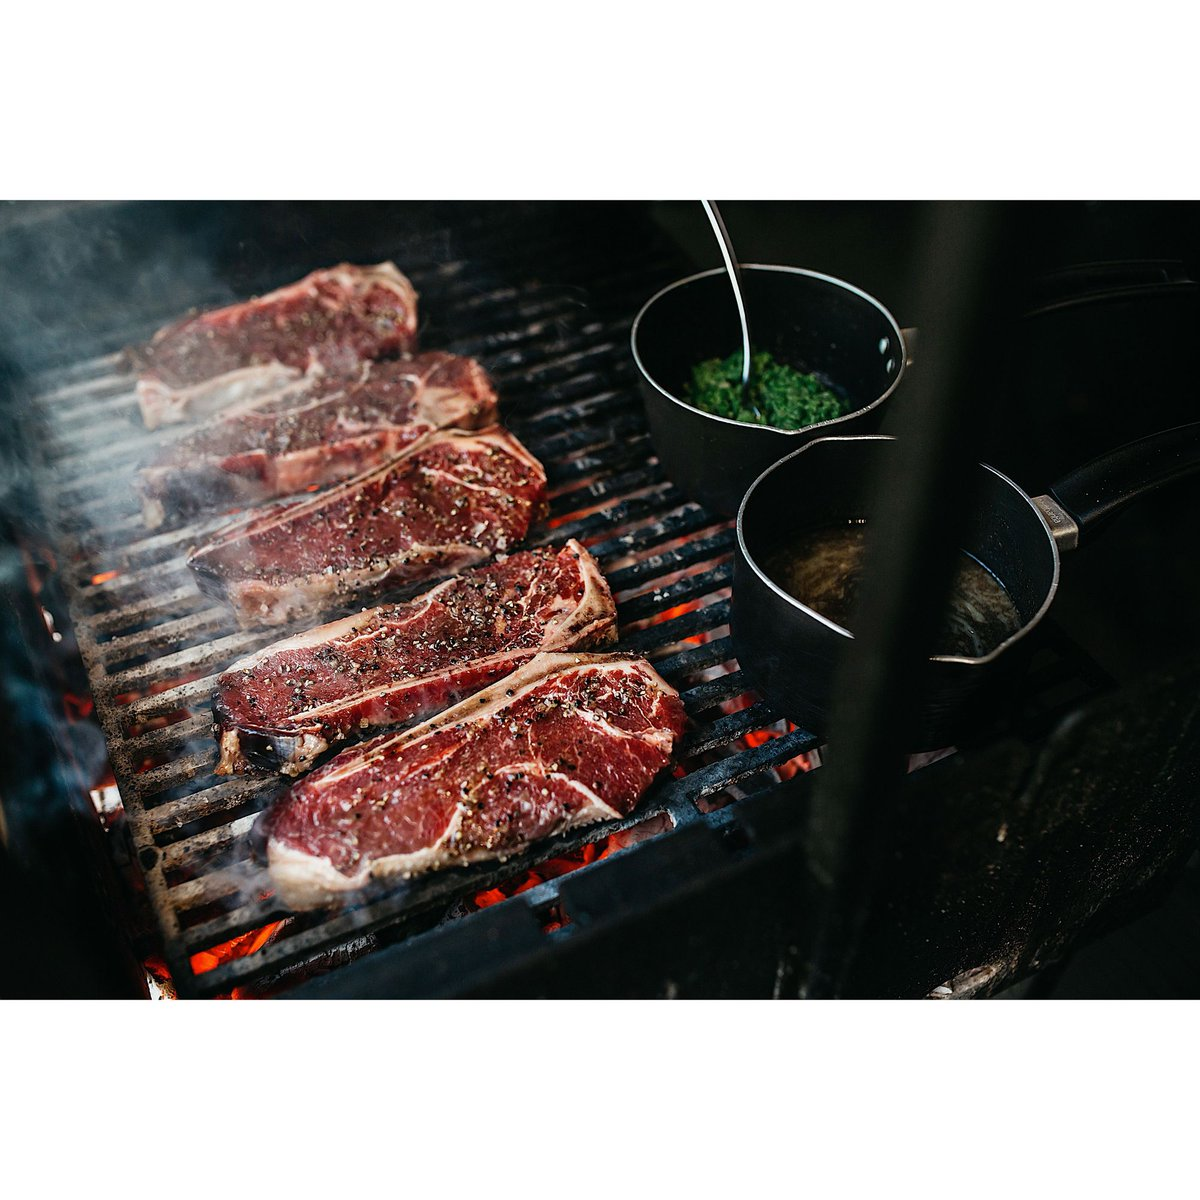 🥩 B B Q   Come try our 40 day dry aged Hereford sirloin steak straight from our bbq on our covered terrace.   #dinner #lunch #foodlover #local #fresh #seasonal #food #hungry #tasty #restaurant #terrace #bbq #pub #bestfood #bhfyp #barston #solihull #birmingham #bham #family #love https://t.co/xmAG9l6zjK